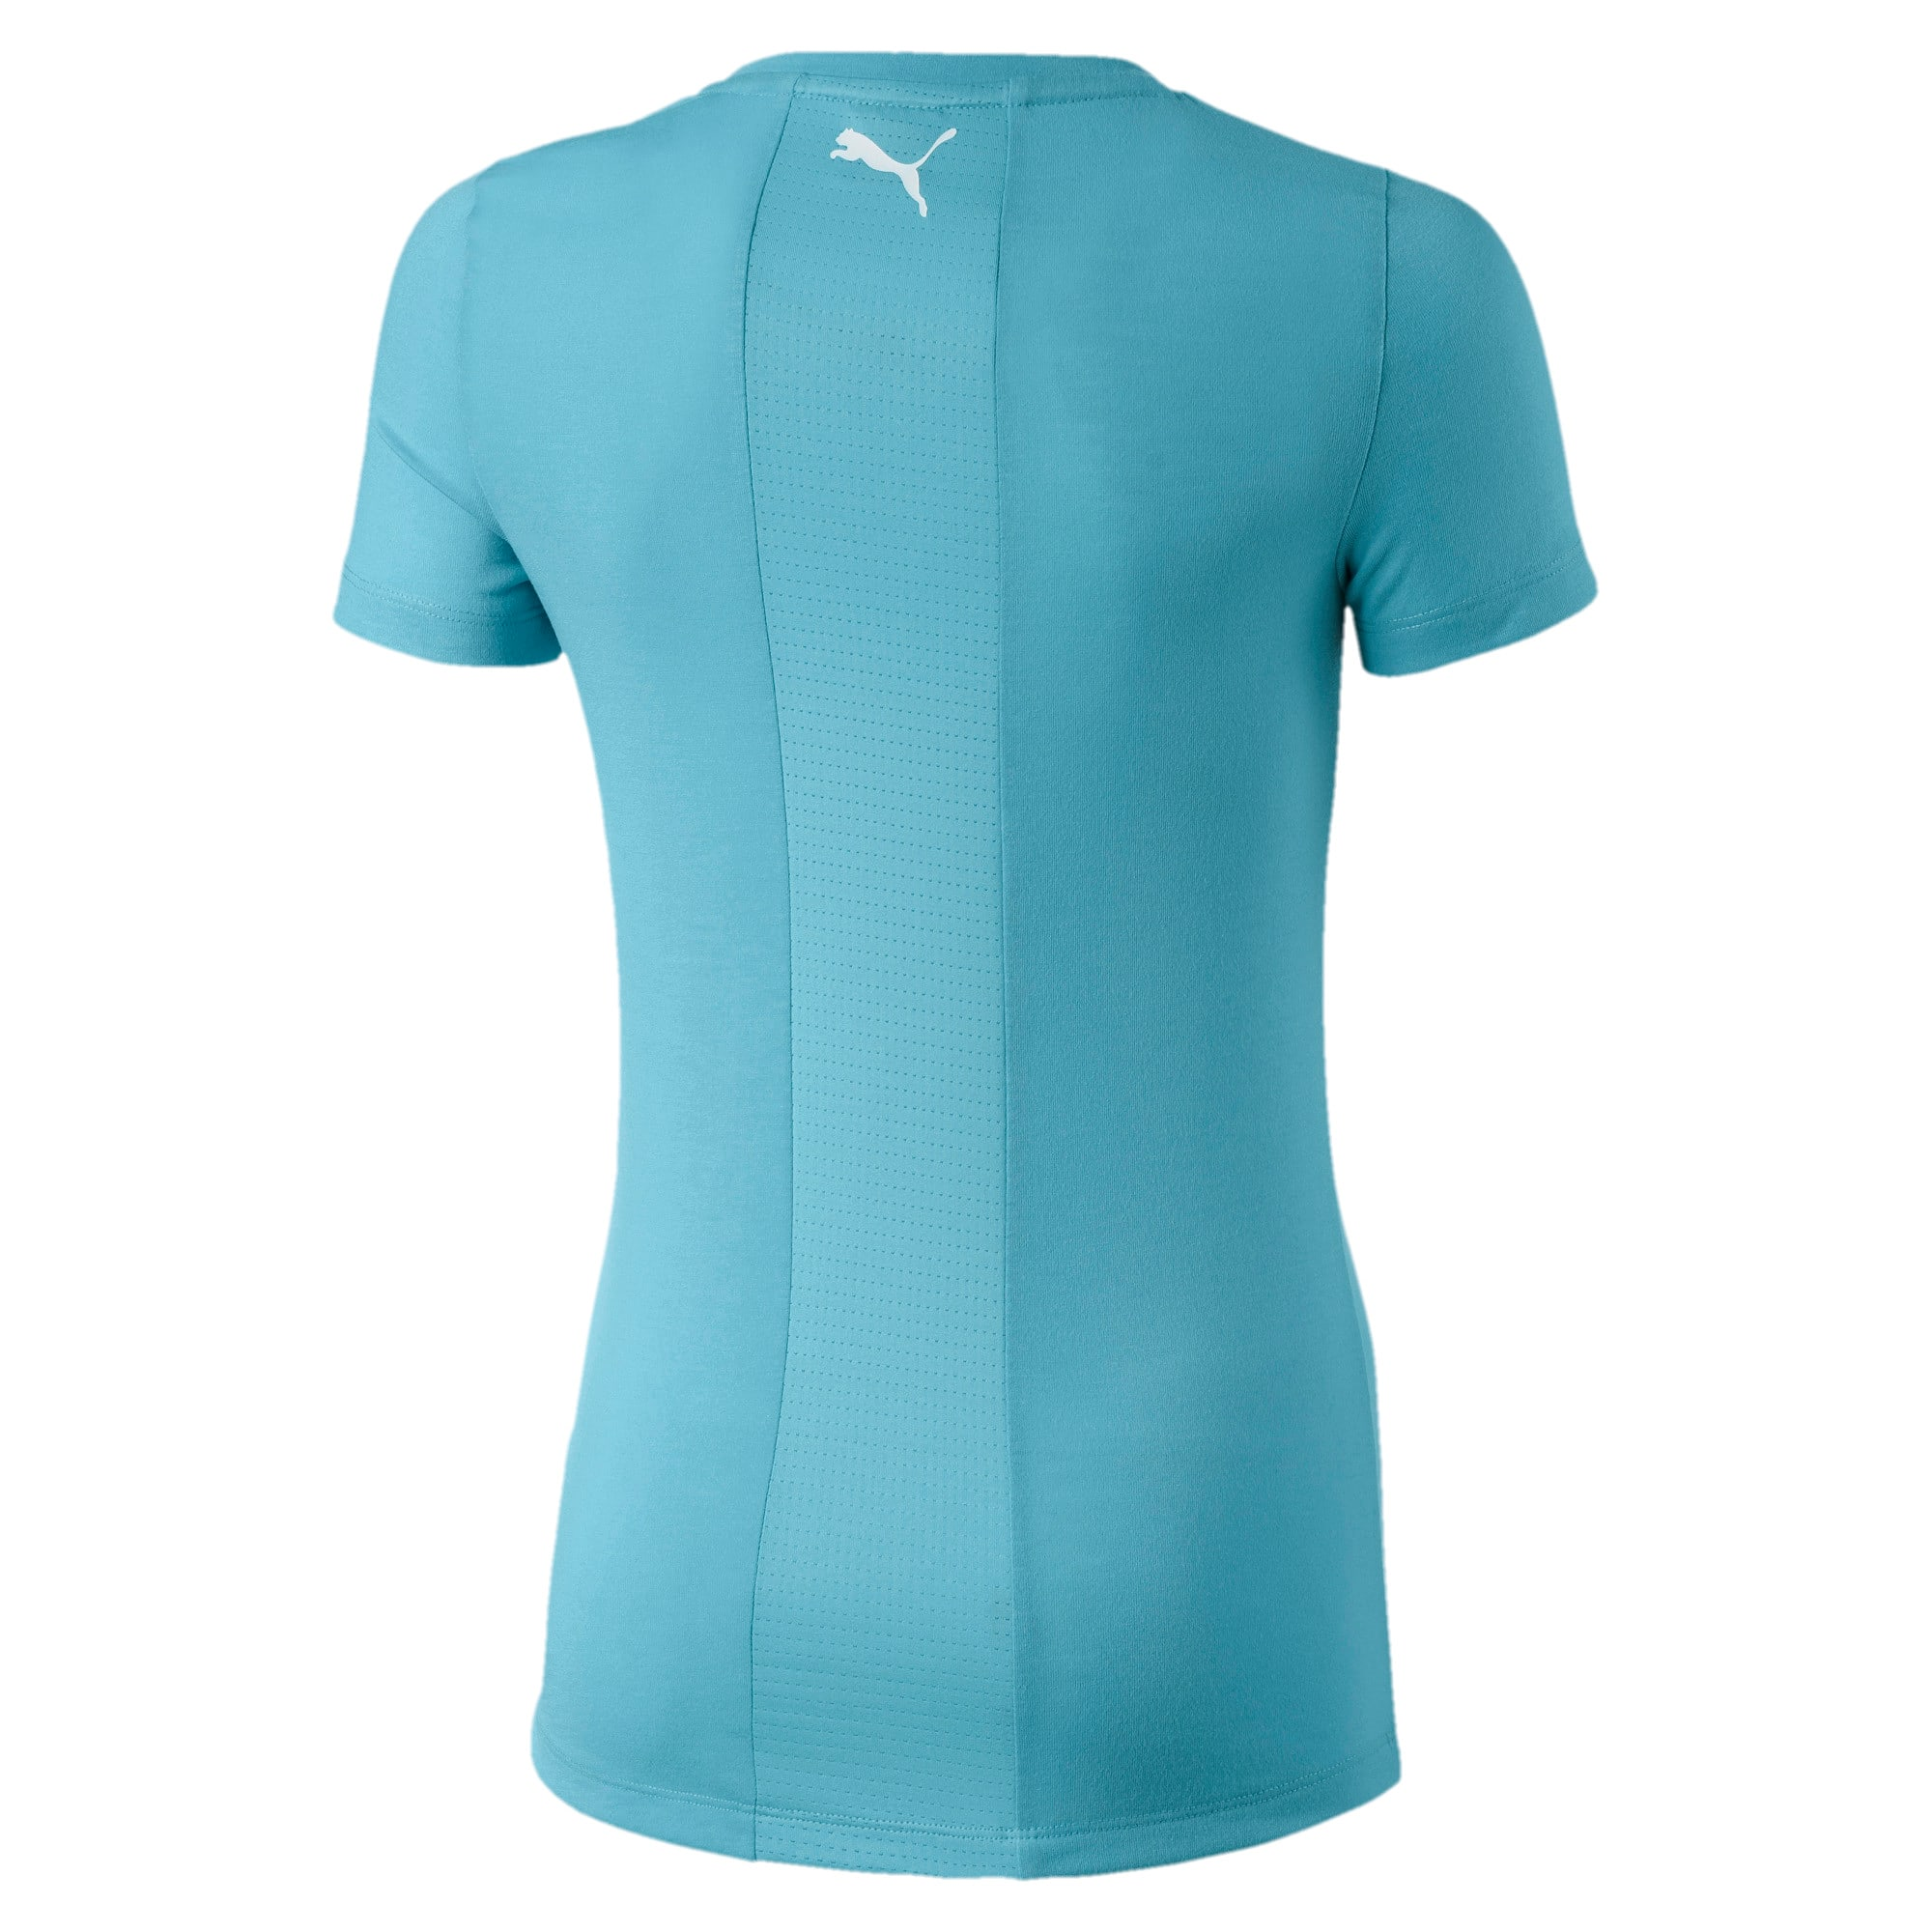 Thumbnail 2 of Active Sports dryCELL Girls' Tee, Milky Blue, medium-IND